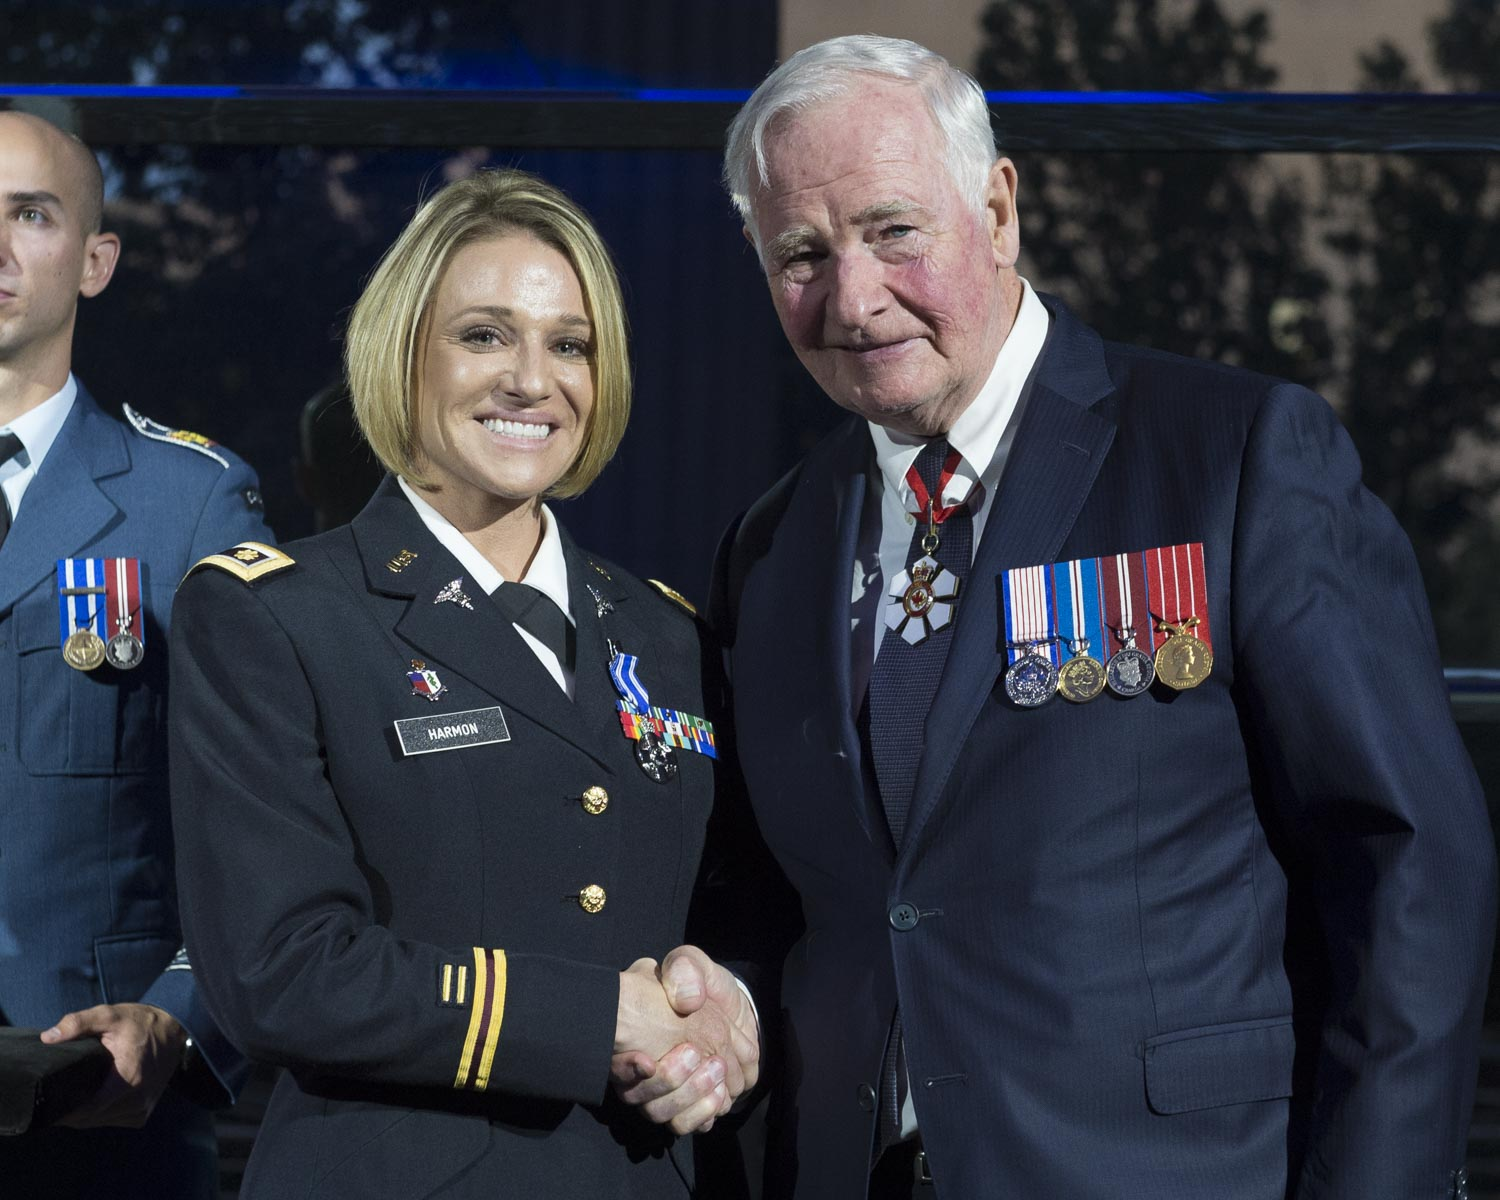 Between December 2015 and January 2016, Major Harmon, then Captain, demonstrated great leadership and initiative as the re-integration specialist of a Canadian citizen held hostage in Afghanistan. She designed and implemented a psychological support package, which laid the groundwork for the recovery of this Canadian and of future hostages. Major Harmon's professionalism and dedication greatly contributed to enhancing relations between Canada and the United States.